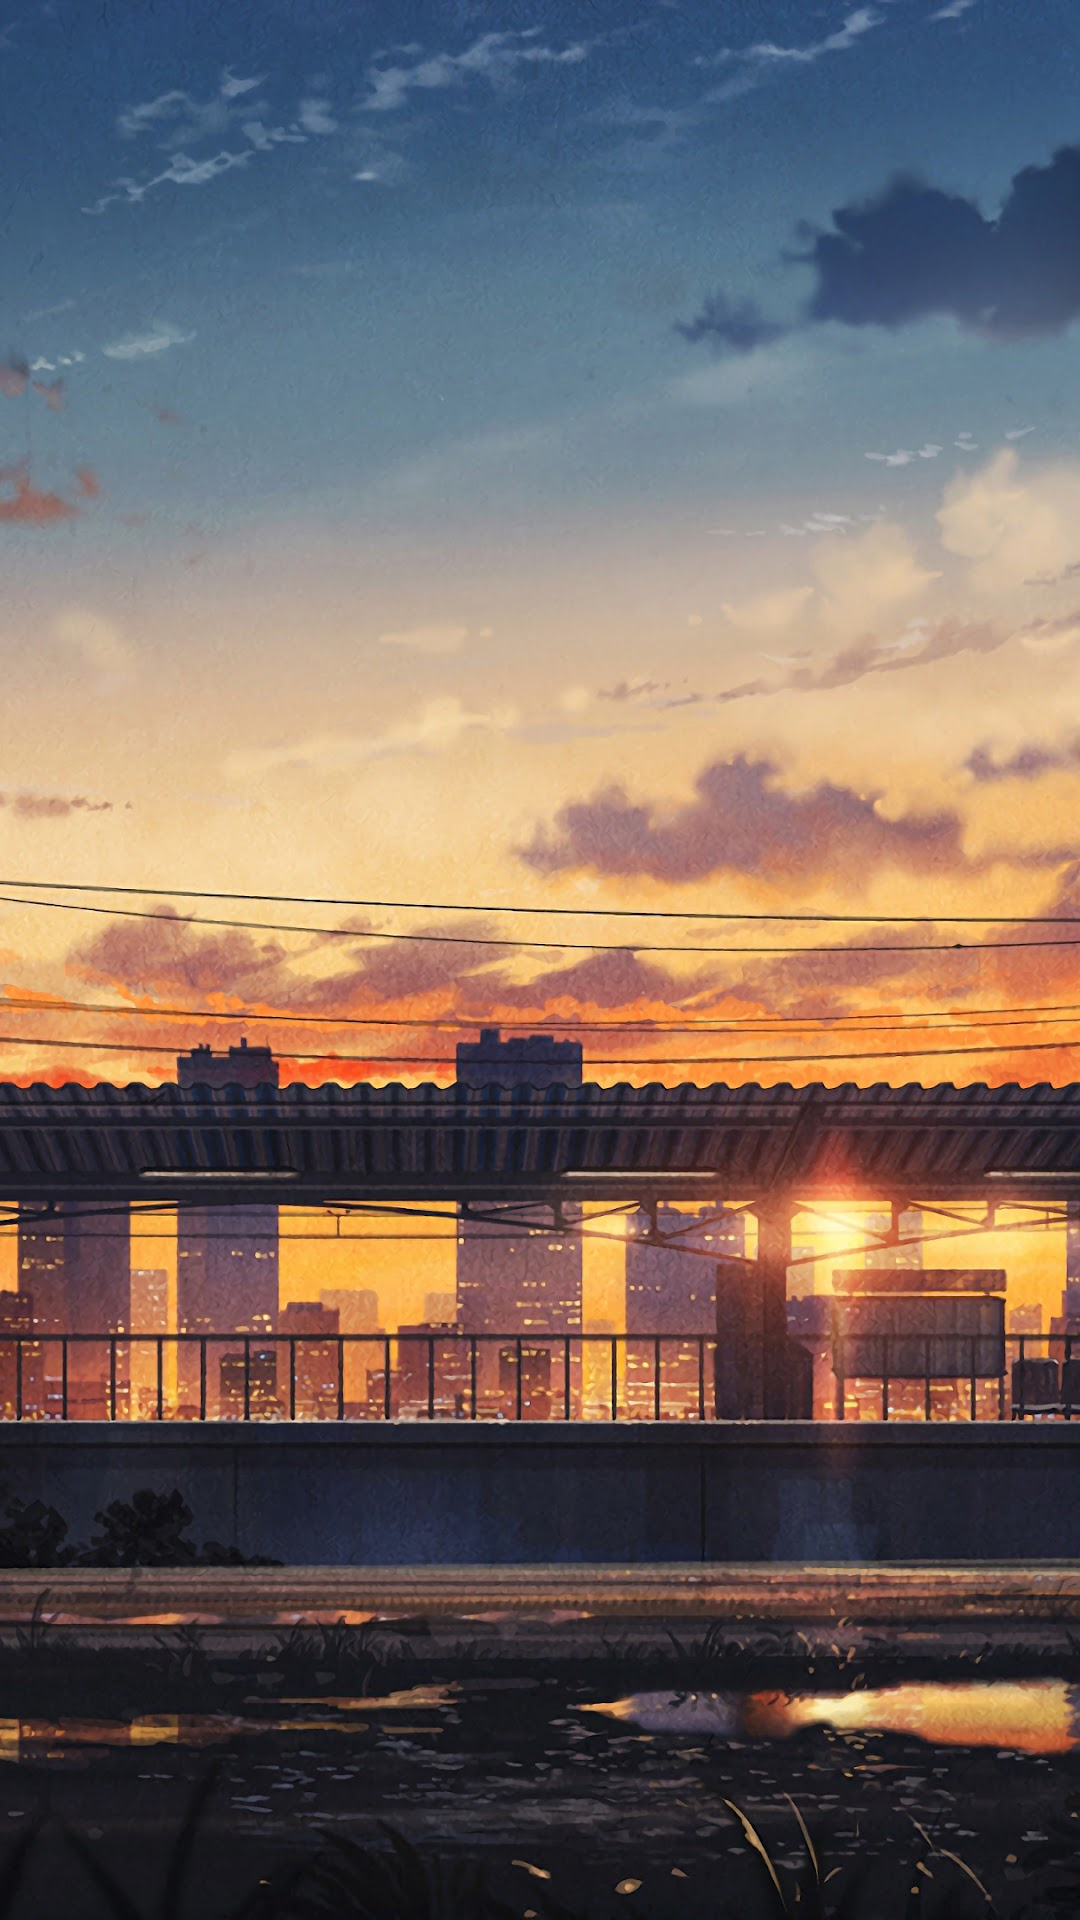 Sunset City Scenery Anime 4k Wallpaper 114